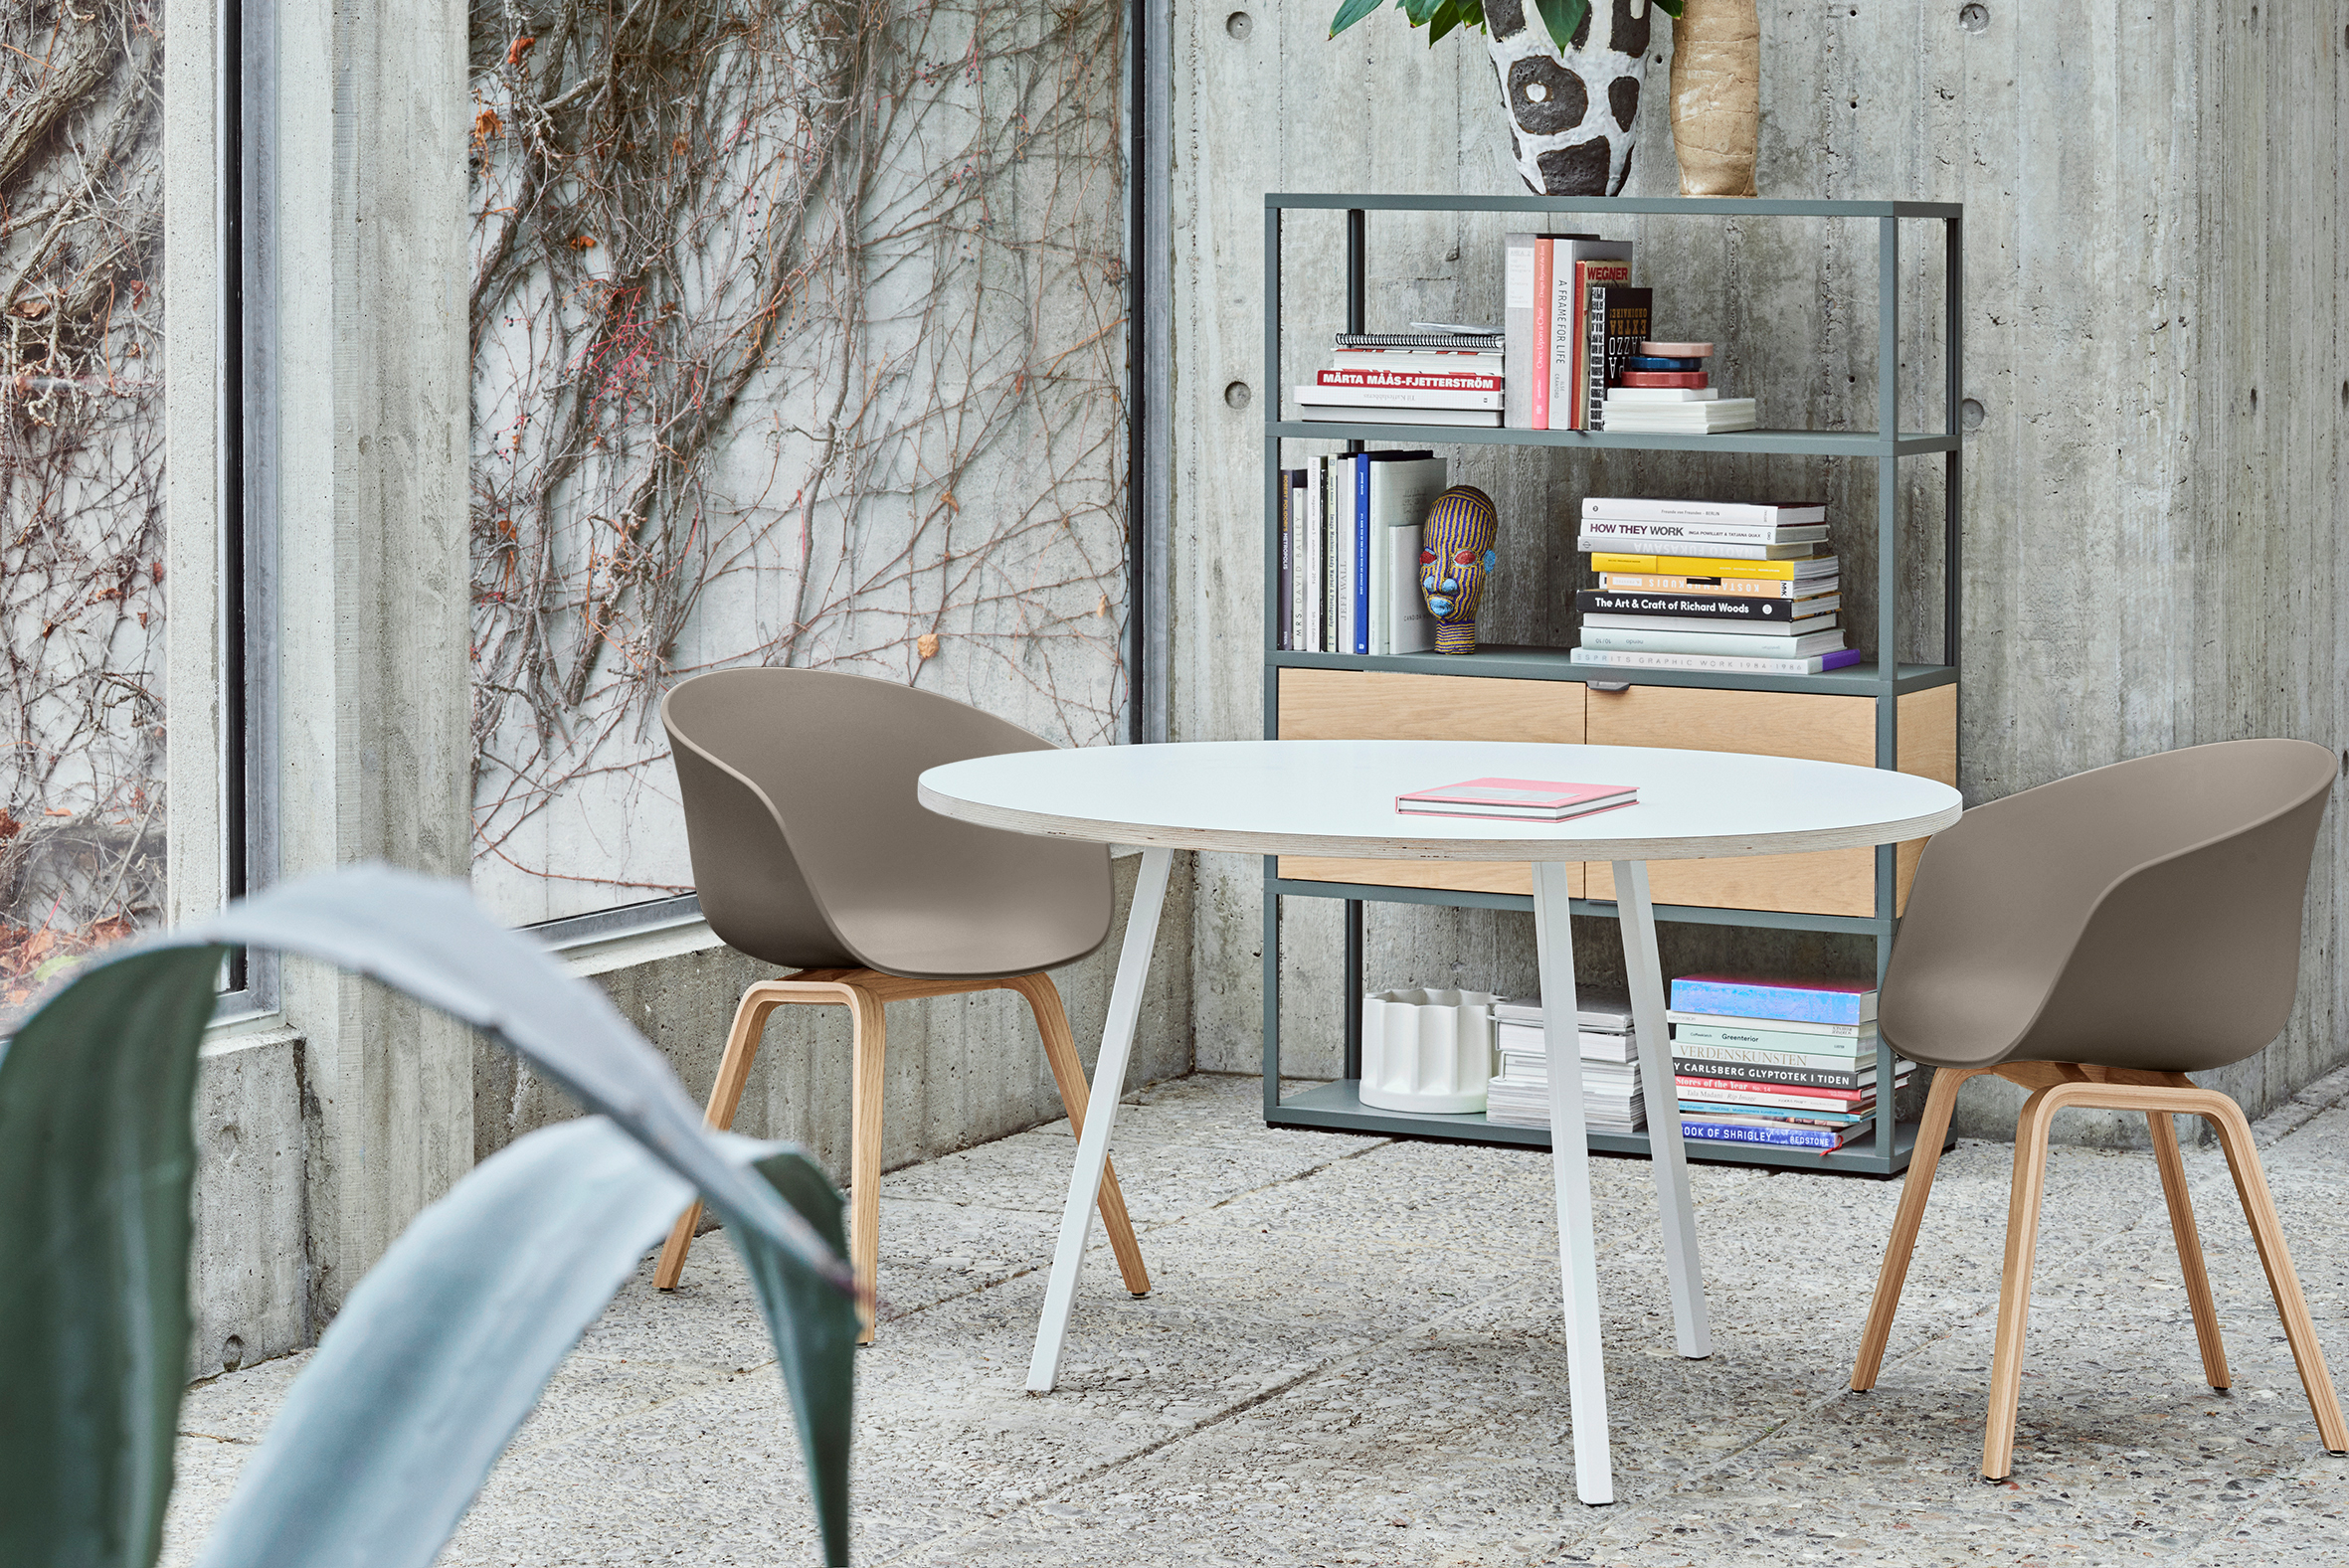 Loop stand round table white laminate 90 cm